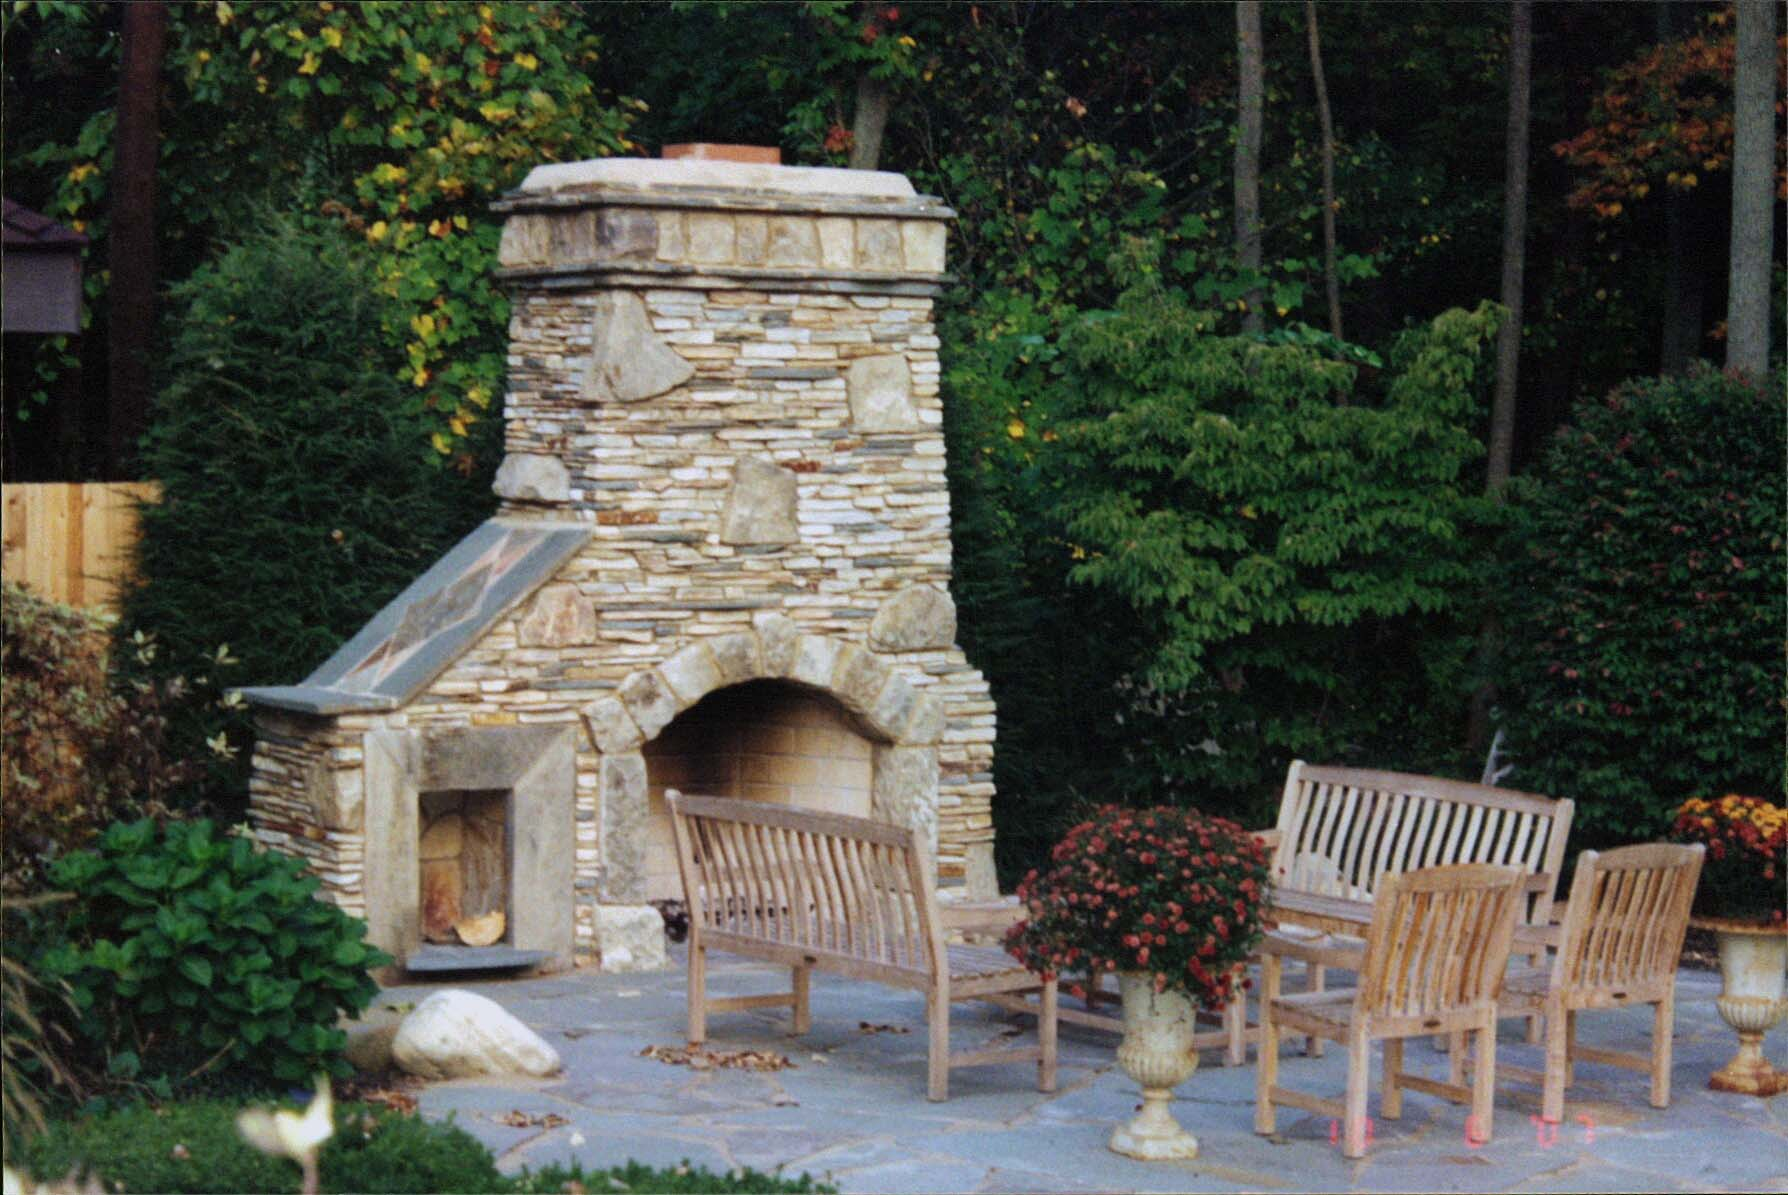 Advertisements : fireplace and patio - thejasonspencertrust.org